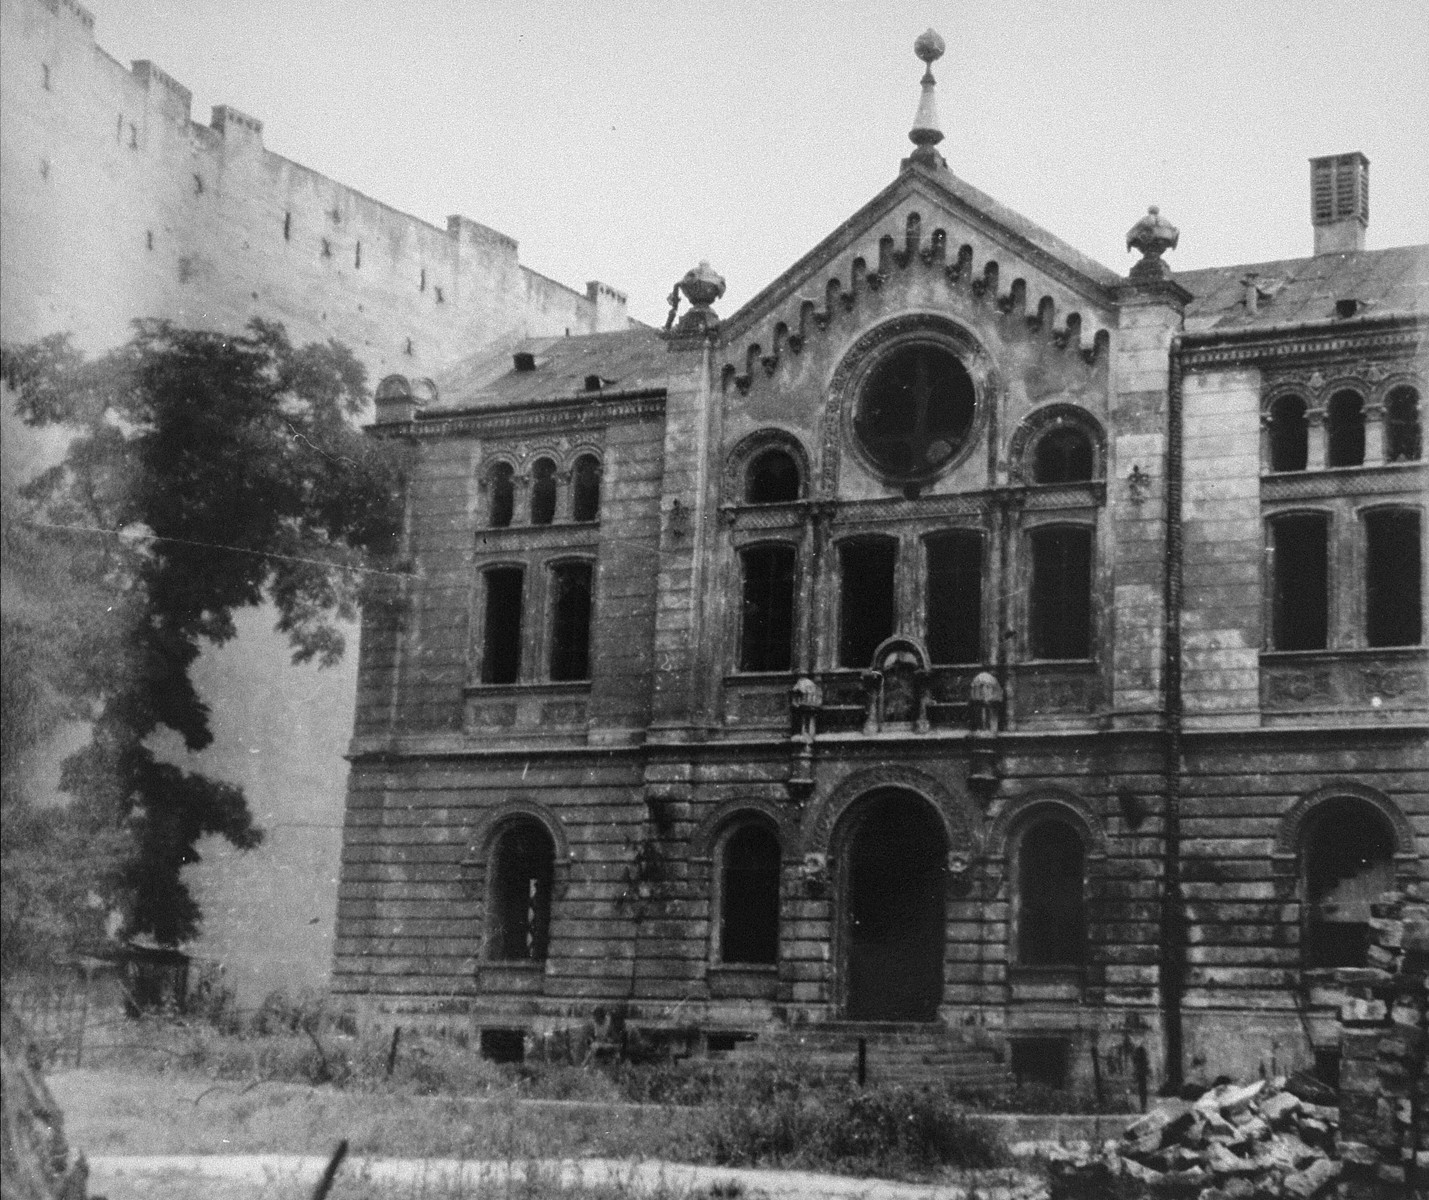 The Nozyk Synagogue in Warsaw.  The synagogue was damaged by an air raid in September 1939. During the war, it was contained within the Small Ghetto area.  After the Warsaw ghetto uprising and the deportation of the Jewish population, it was used by the Germans as a stable and depot.